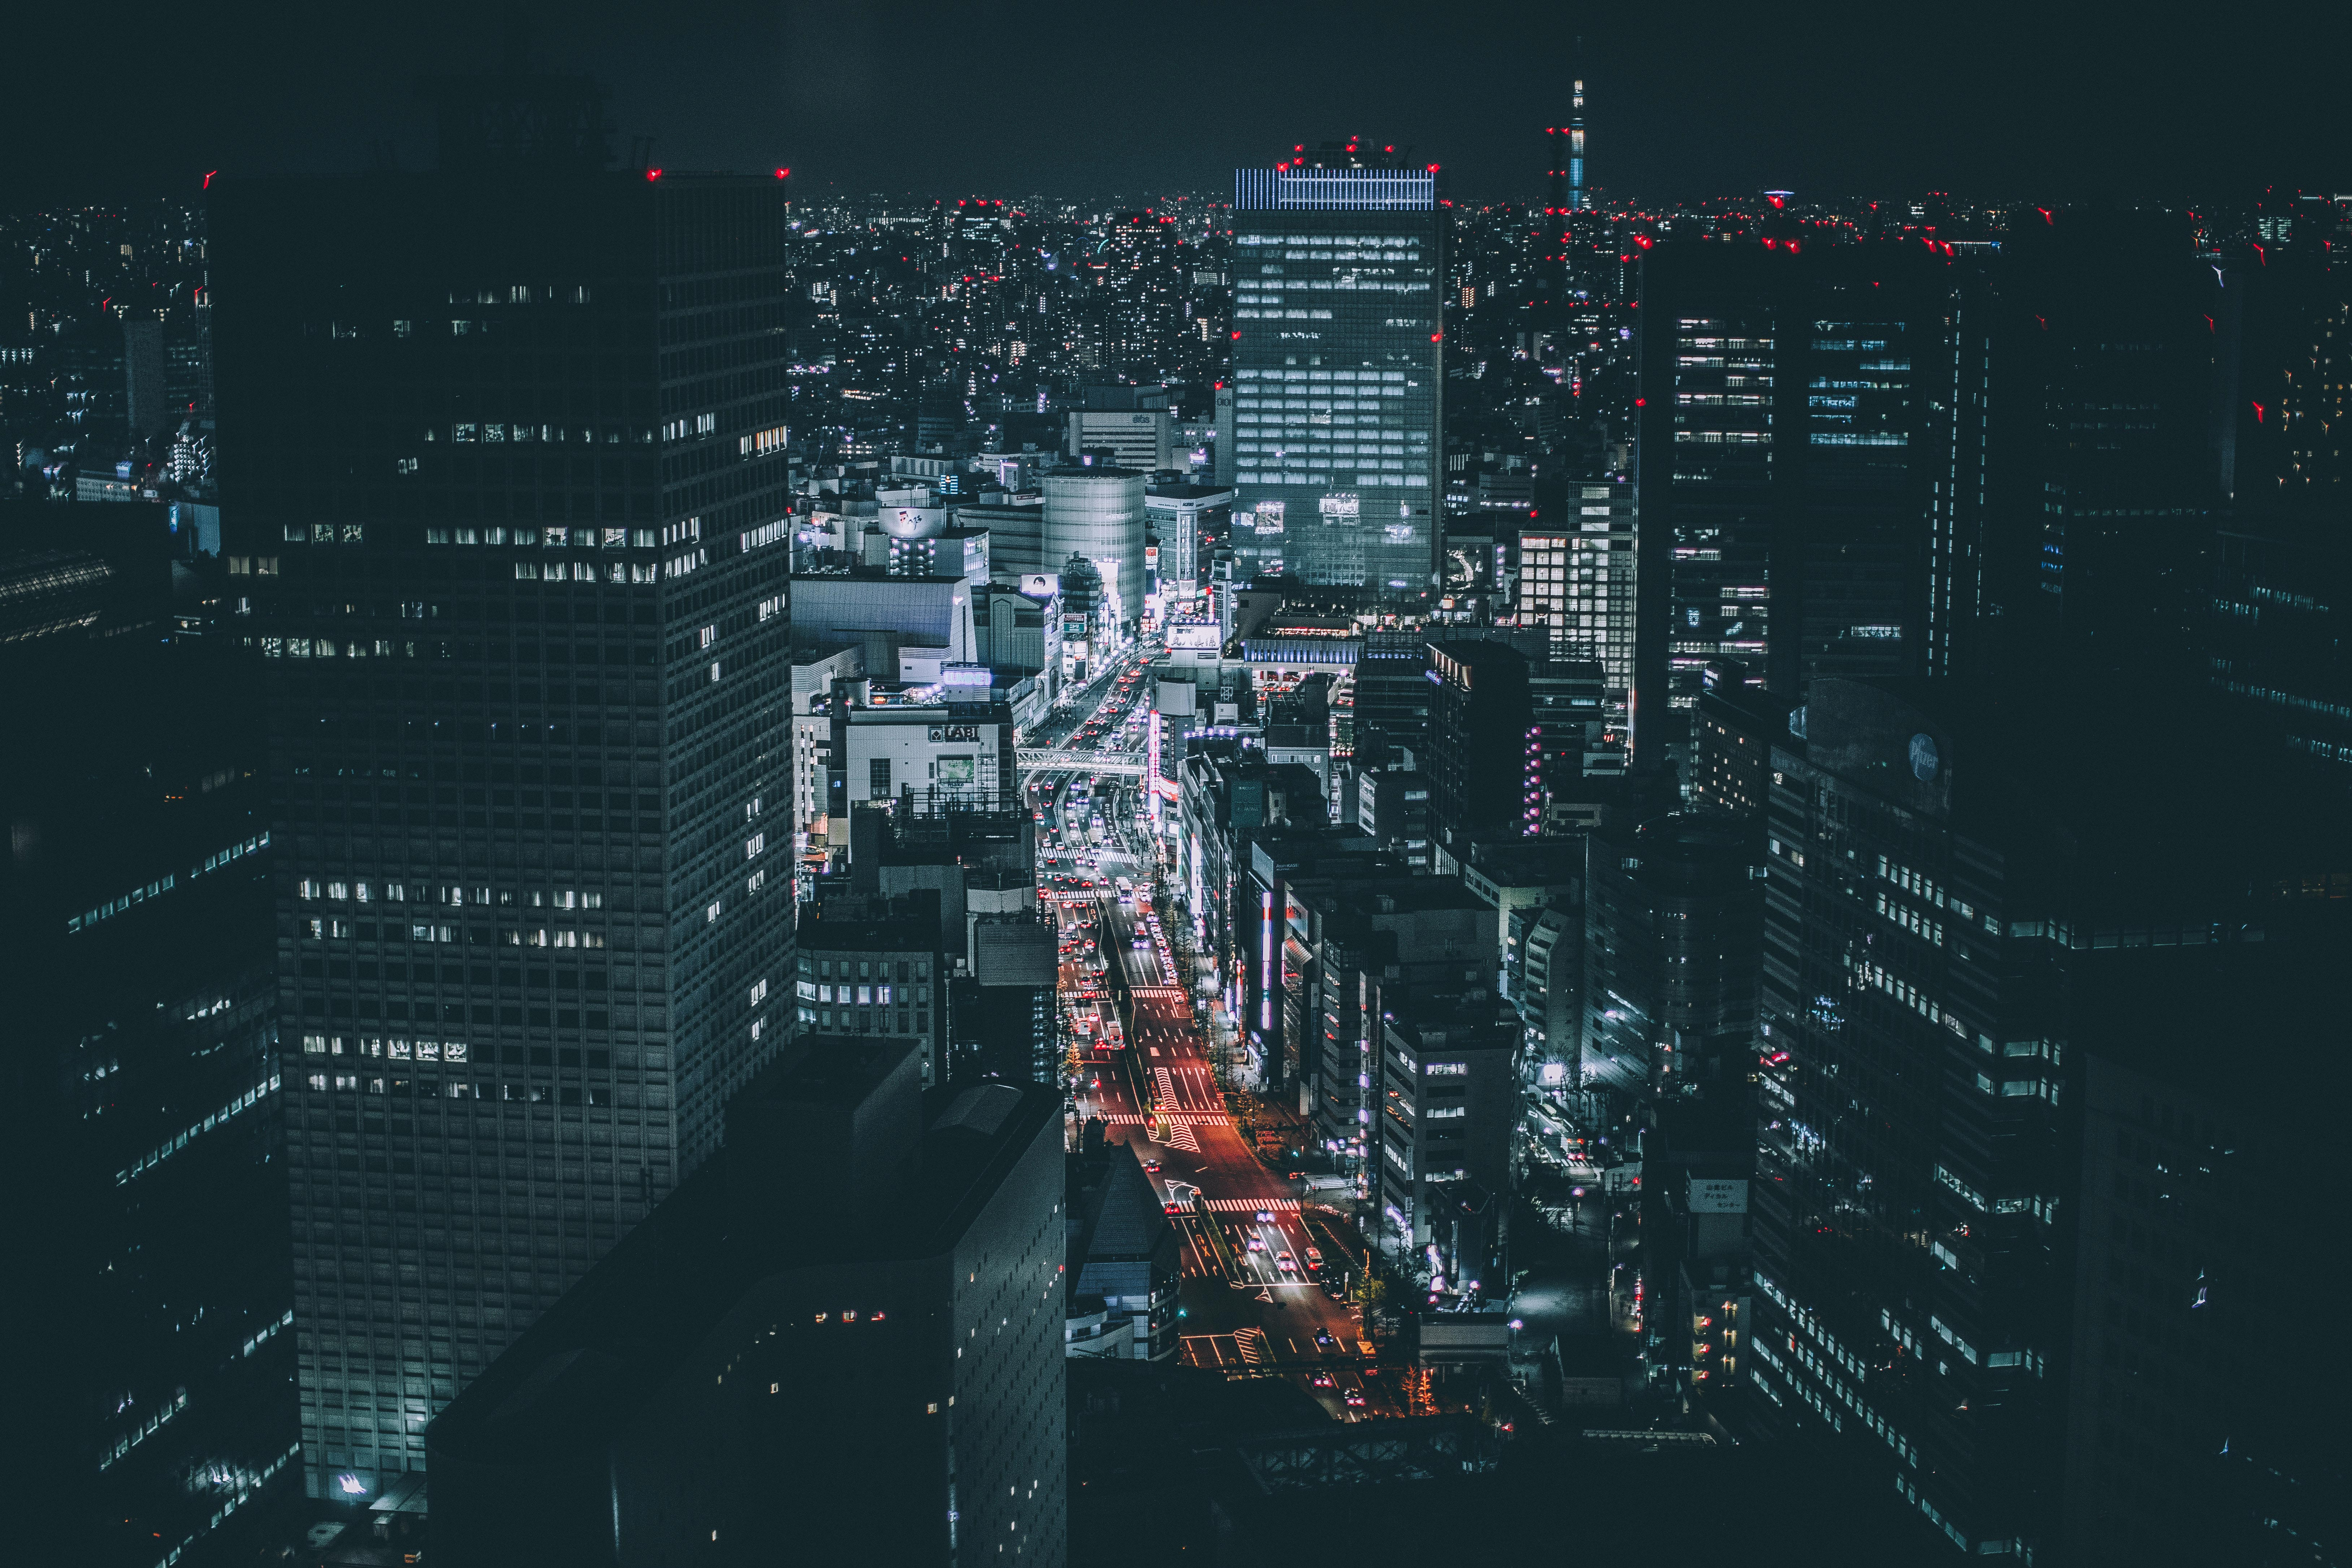 tokyo night 5k hd photography 4k wallpapers images backgrounds